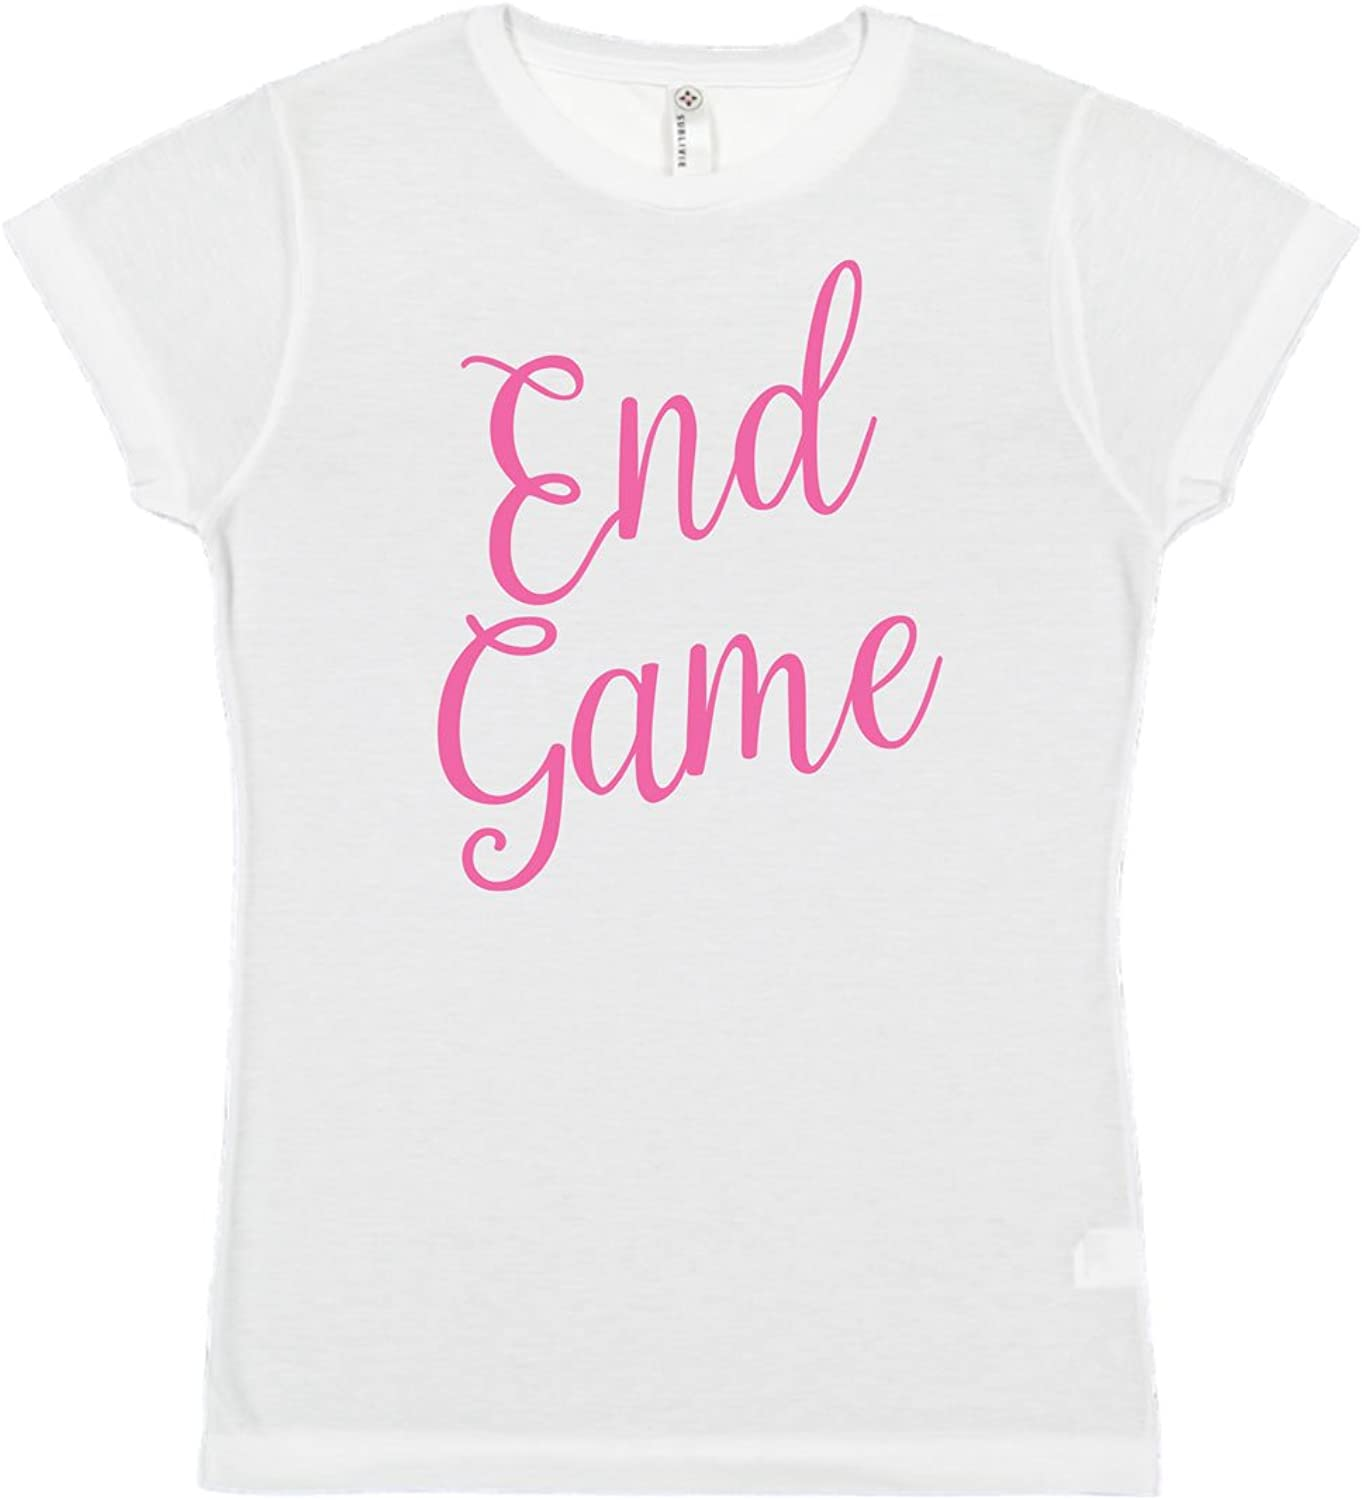 L A T End Game SubliVie Junior FIT 100% Polyester Crew Neck Short Sleeve Tee